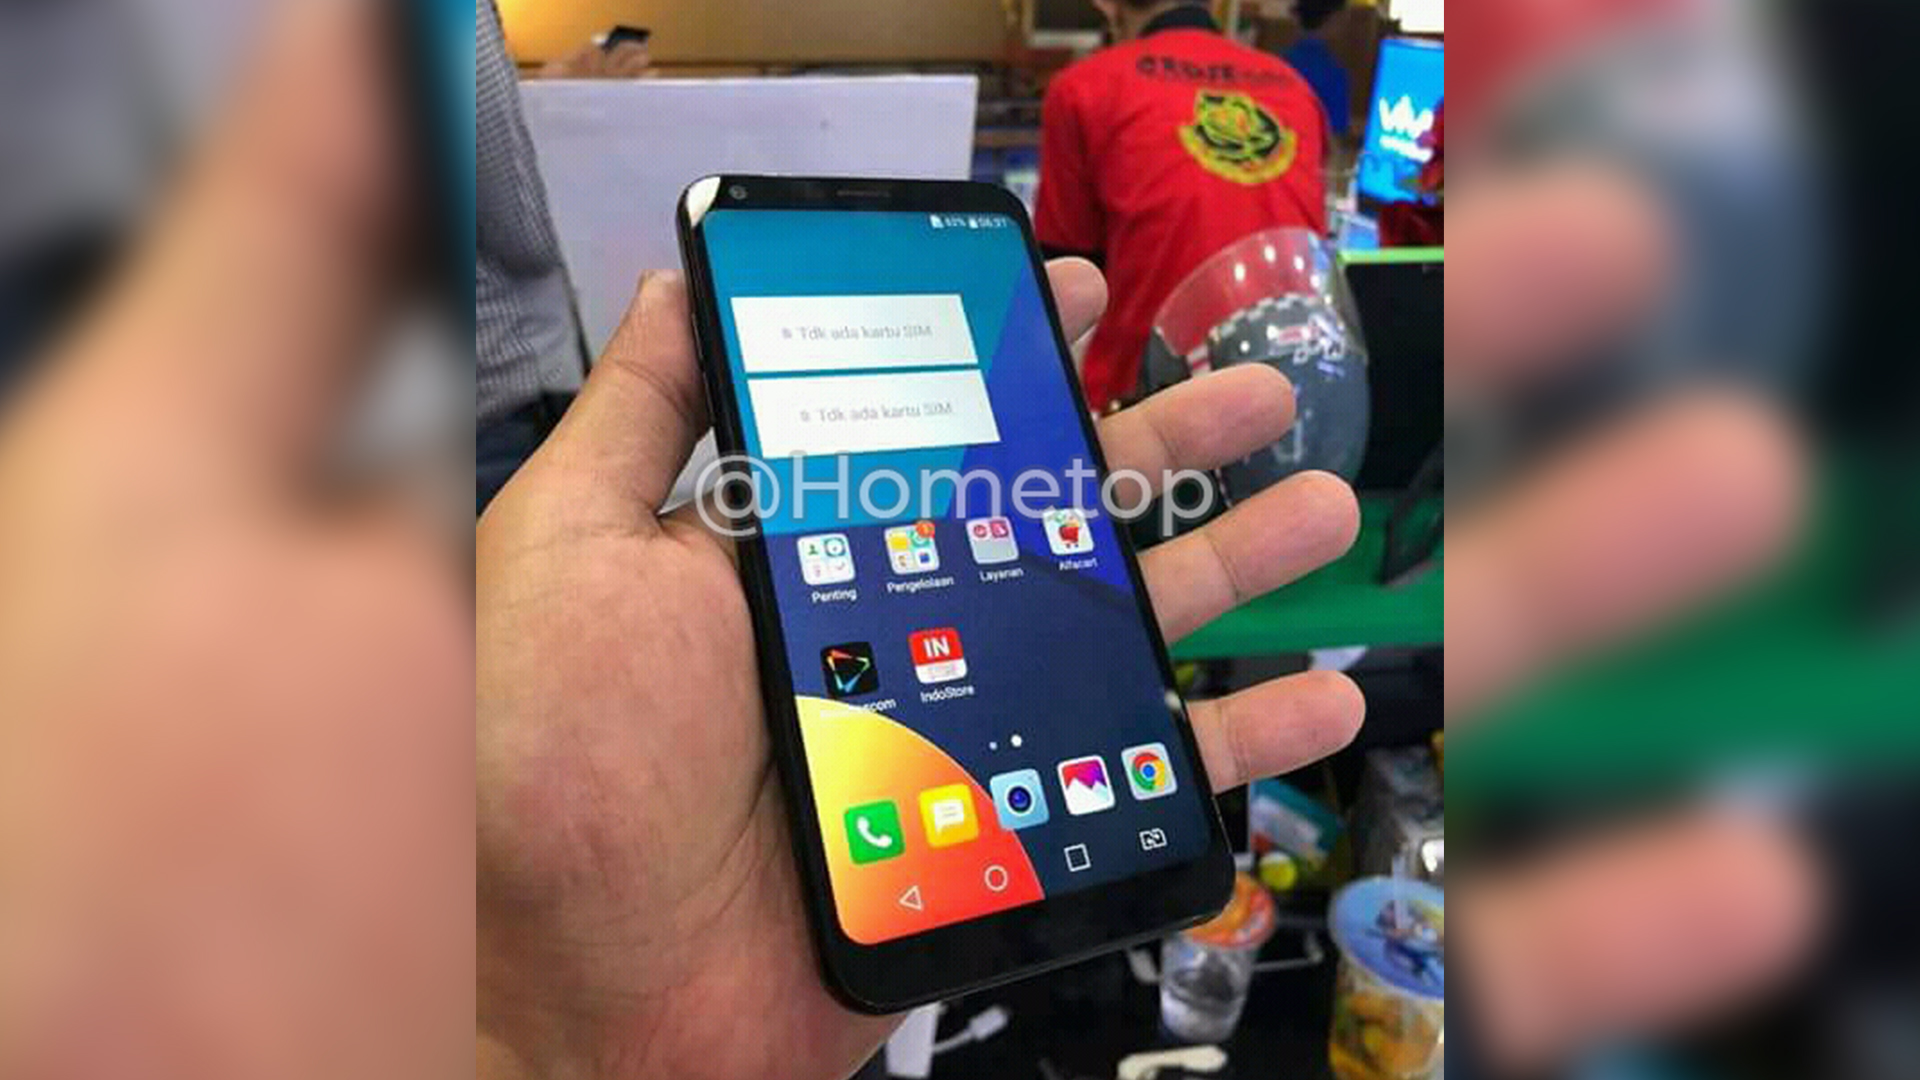 LG Q9 Hands-on image leaked online reveals 18:9 display